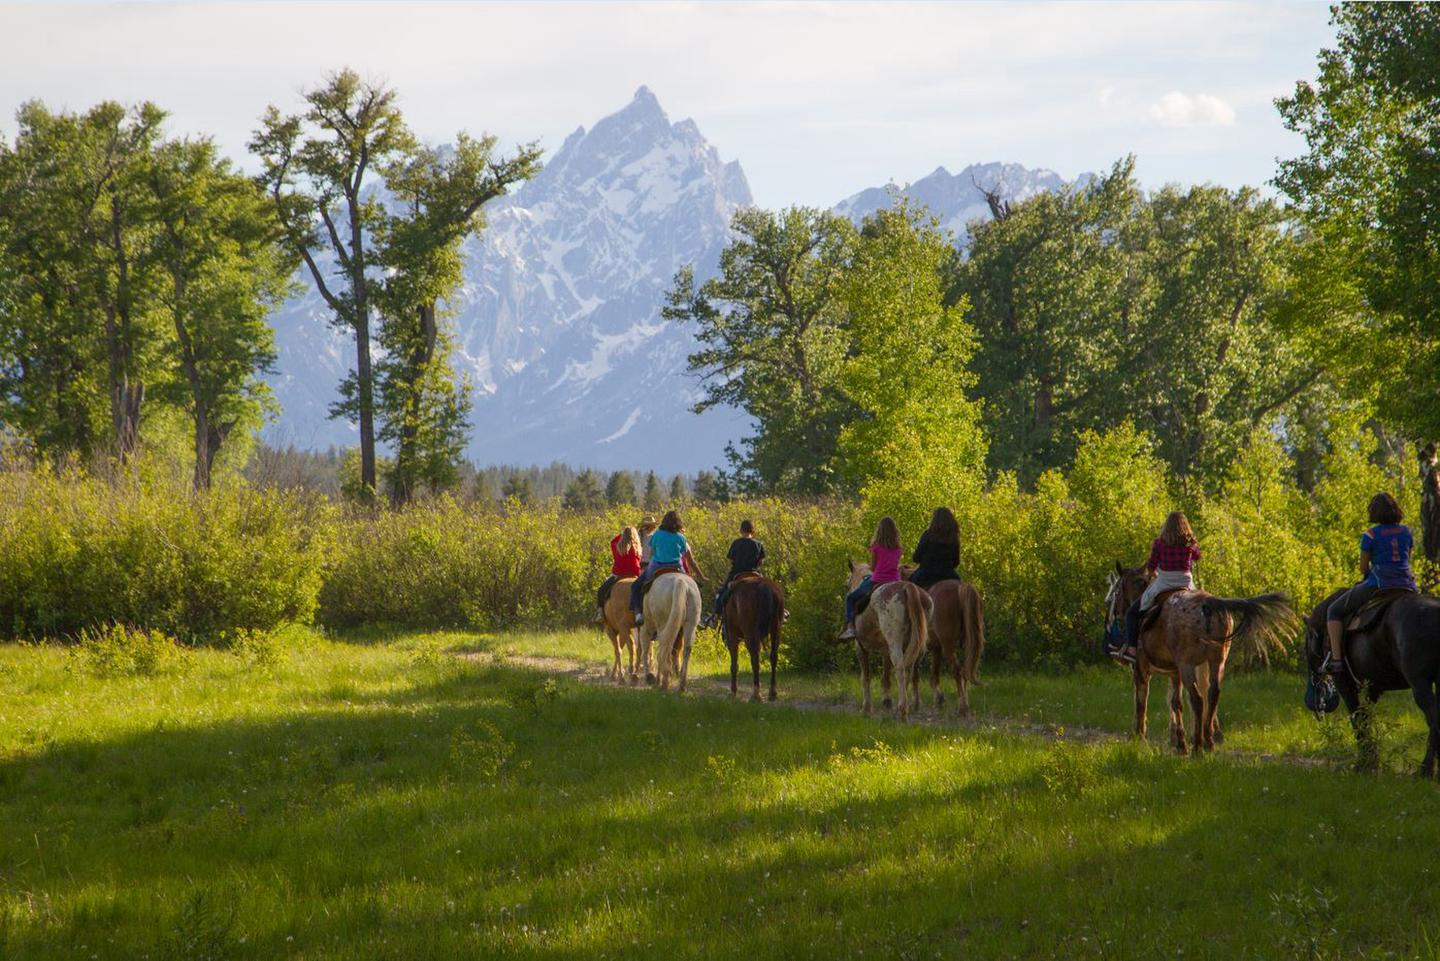 Colter Bay ActivitiesColter Bay and the surrounding area offers a wide variety of activities for all ages, including marina rentals, horseback riding, world-class guided fishing, and lake cruises. Stop by our activities desk to find the perfect excursion for everyone in your group!